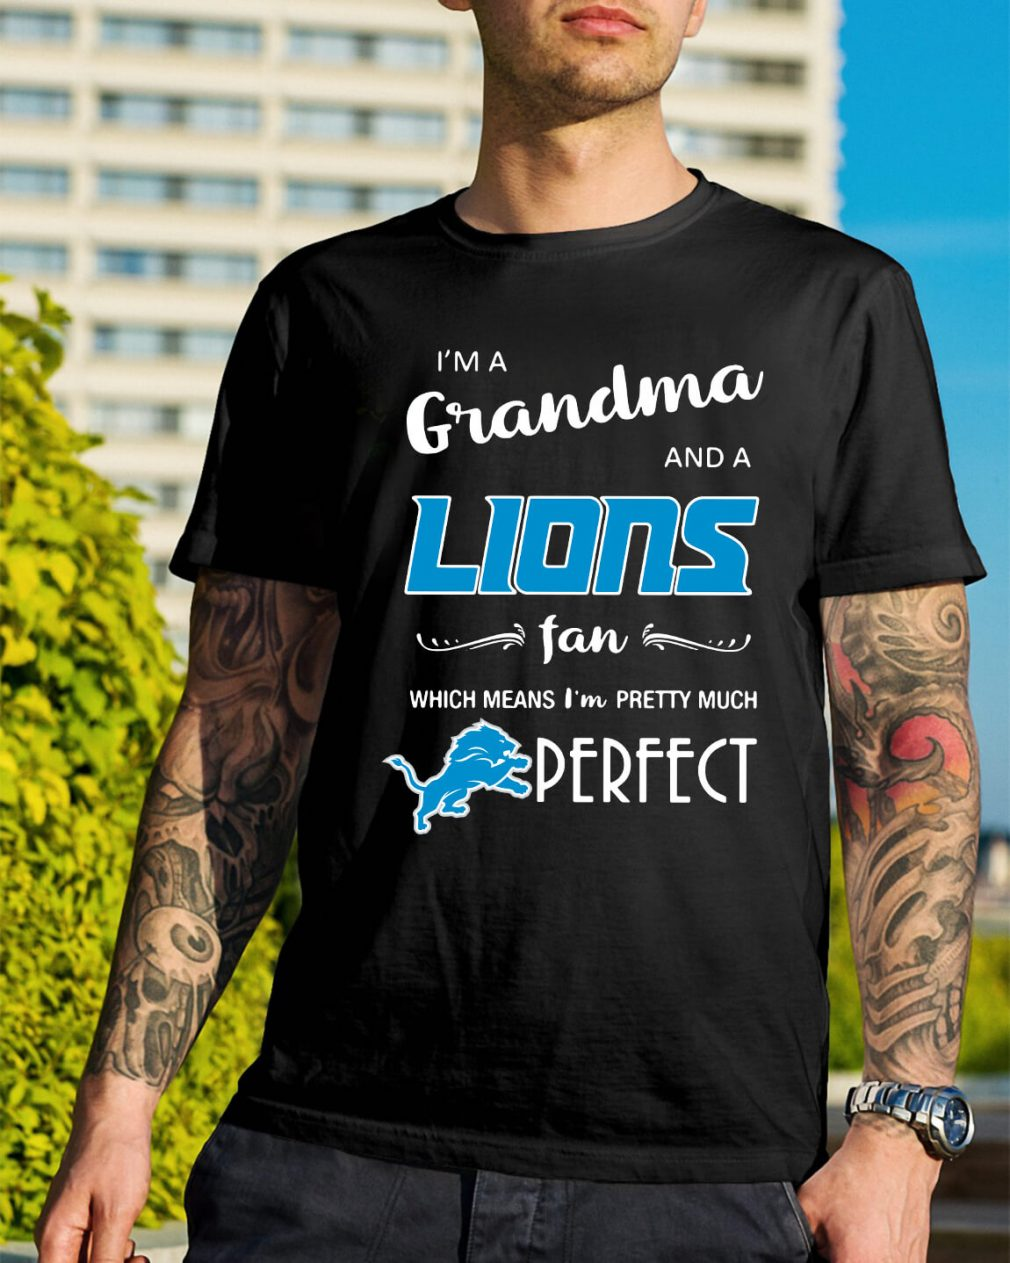 I'm a grandma and a Lions fan which means I'm pretty much perfect shirt